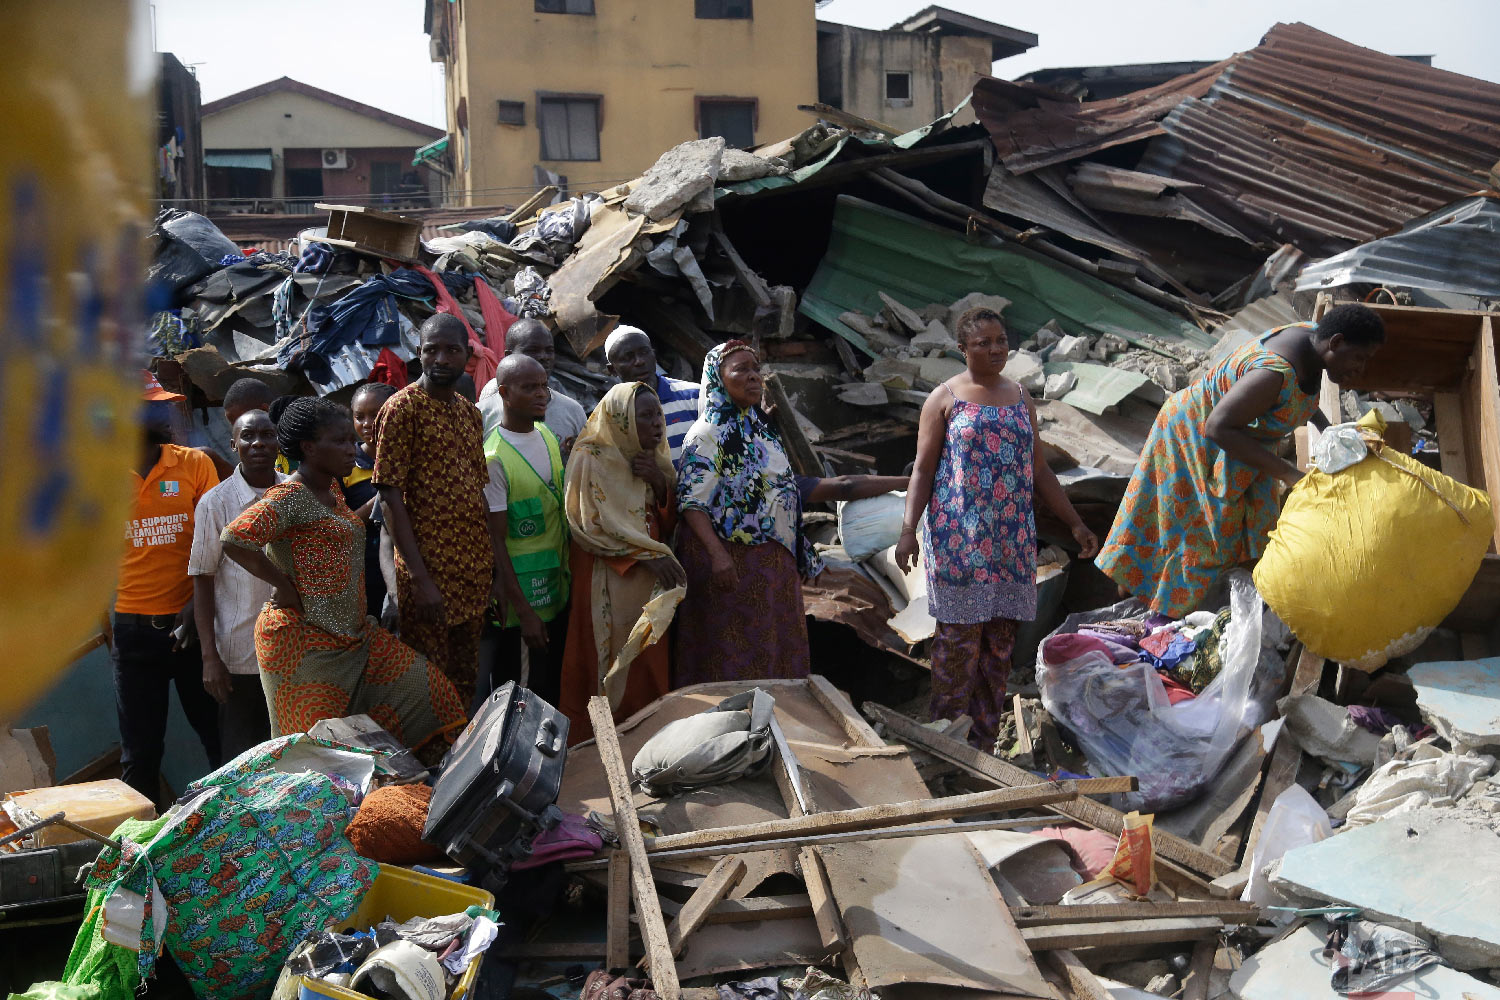 Local people at the scene after a building collapsed in Lagos, Nigeria, Thursday, March 14, 2019. (AP Photo/Sunday Alamba)